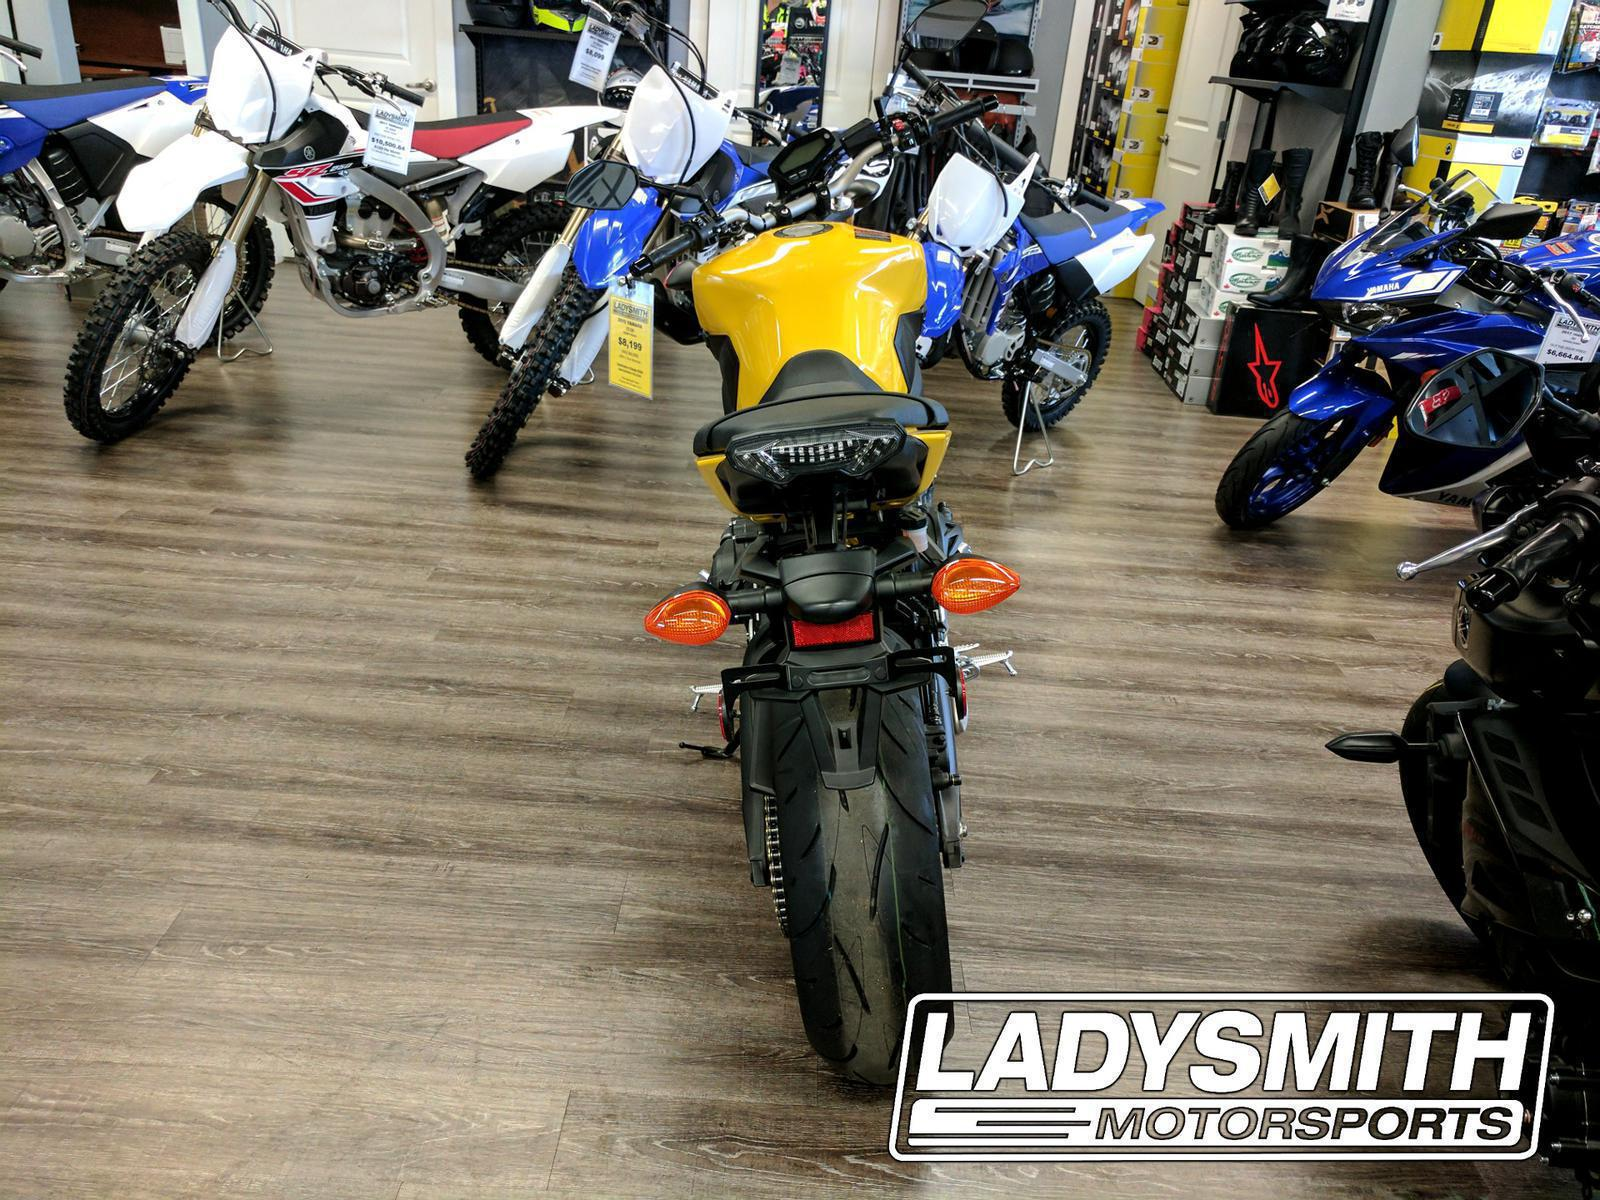 2015 Yamaha FZ-09 for sale in Ladysmith, BC  Ladysmith